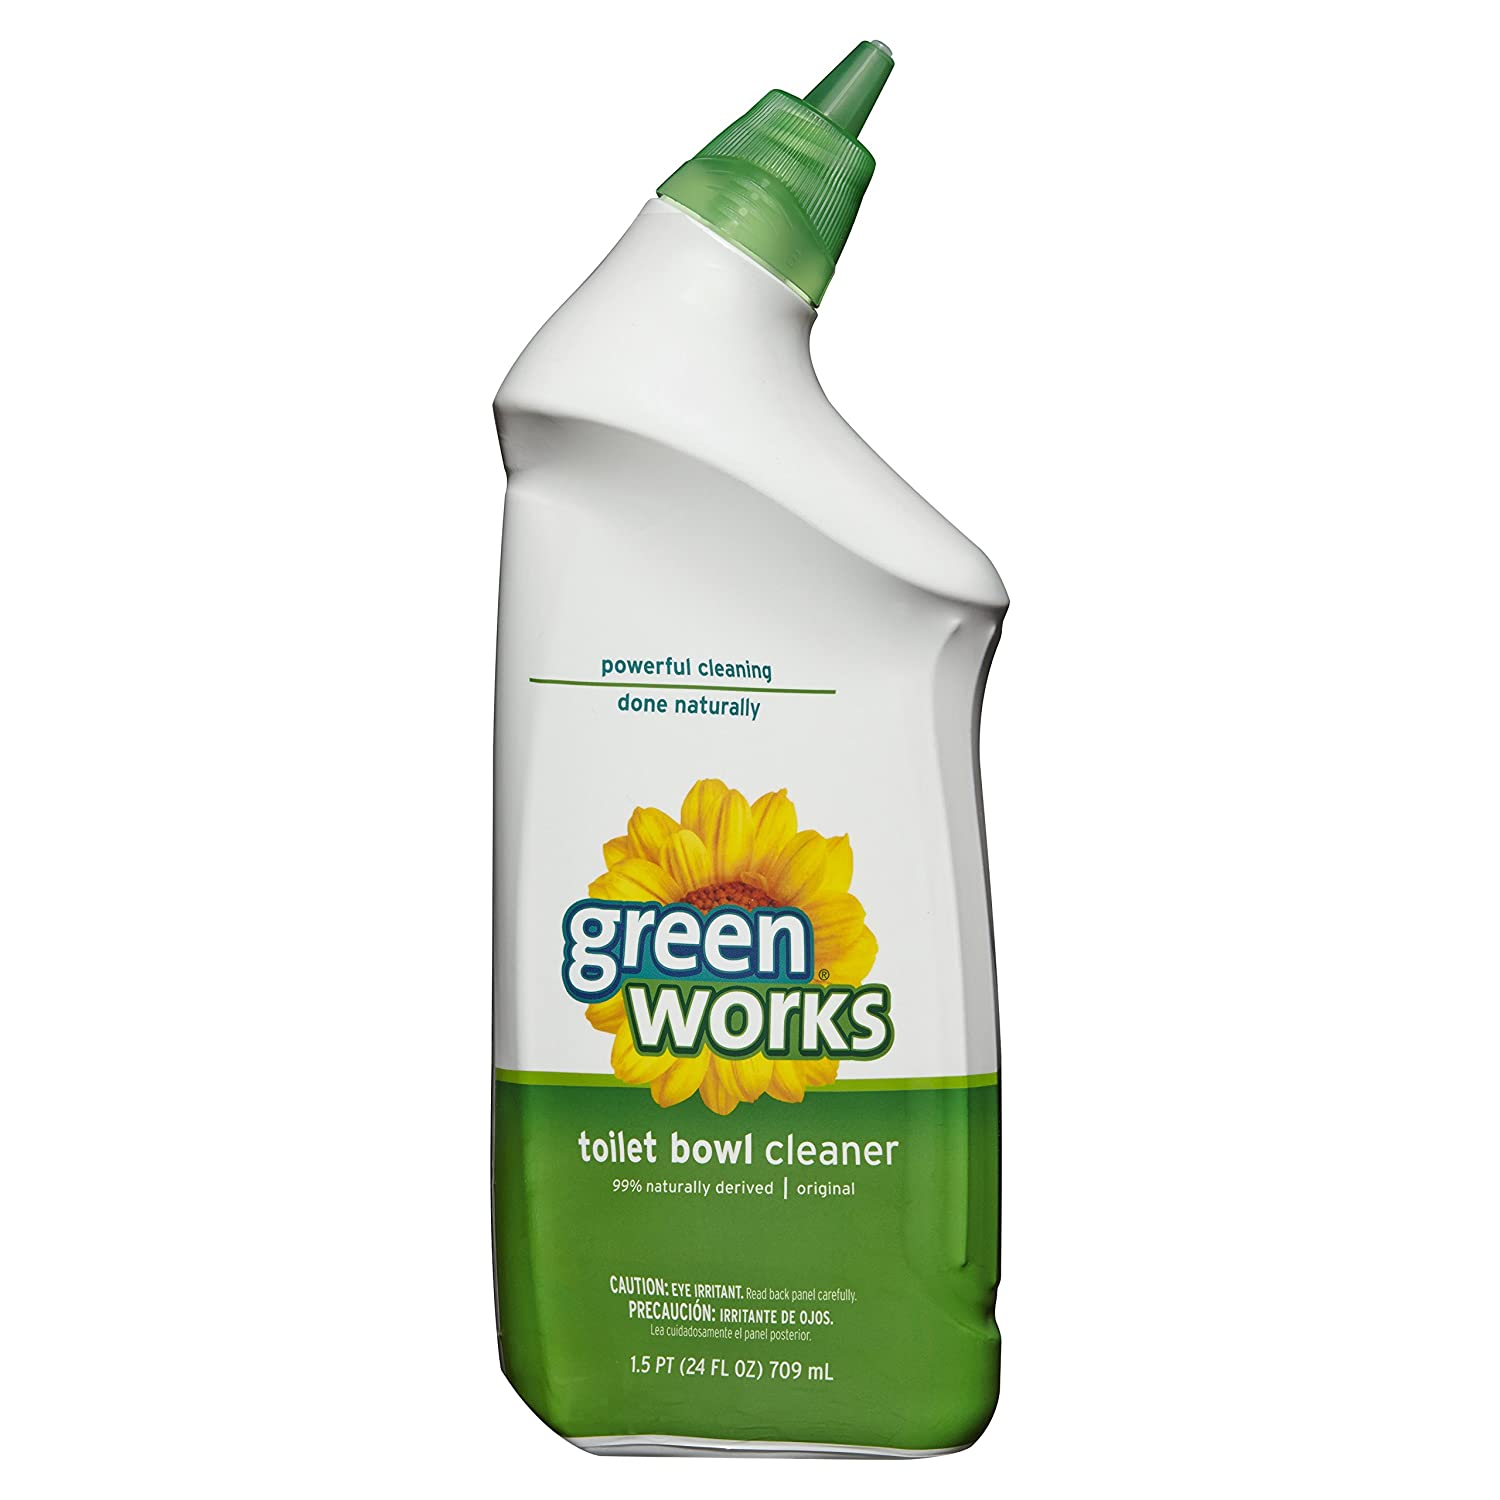 Amazon.com: GreenWorks Toilet Bowl Cleaner, 24 Oz (Pack of 12 ...